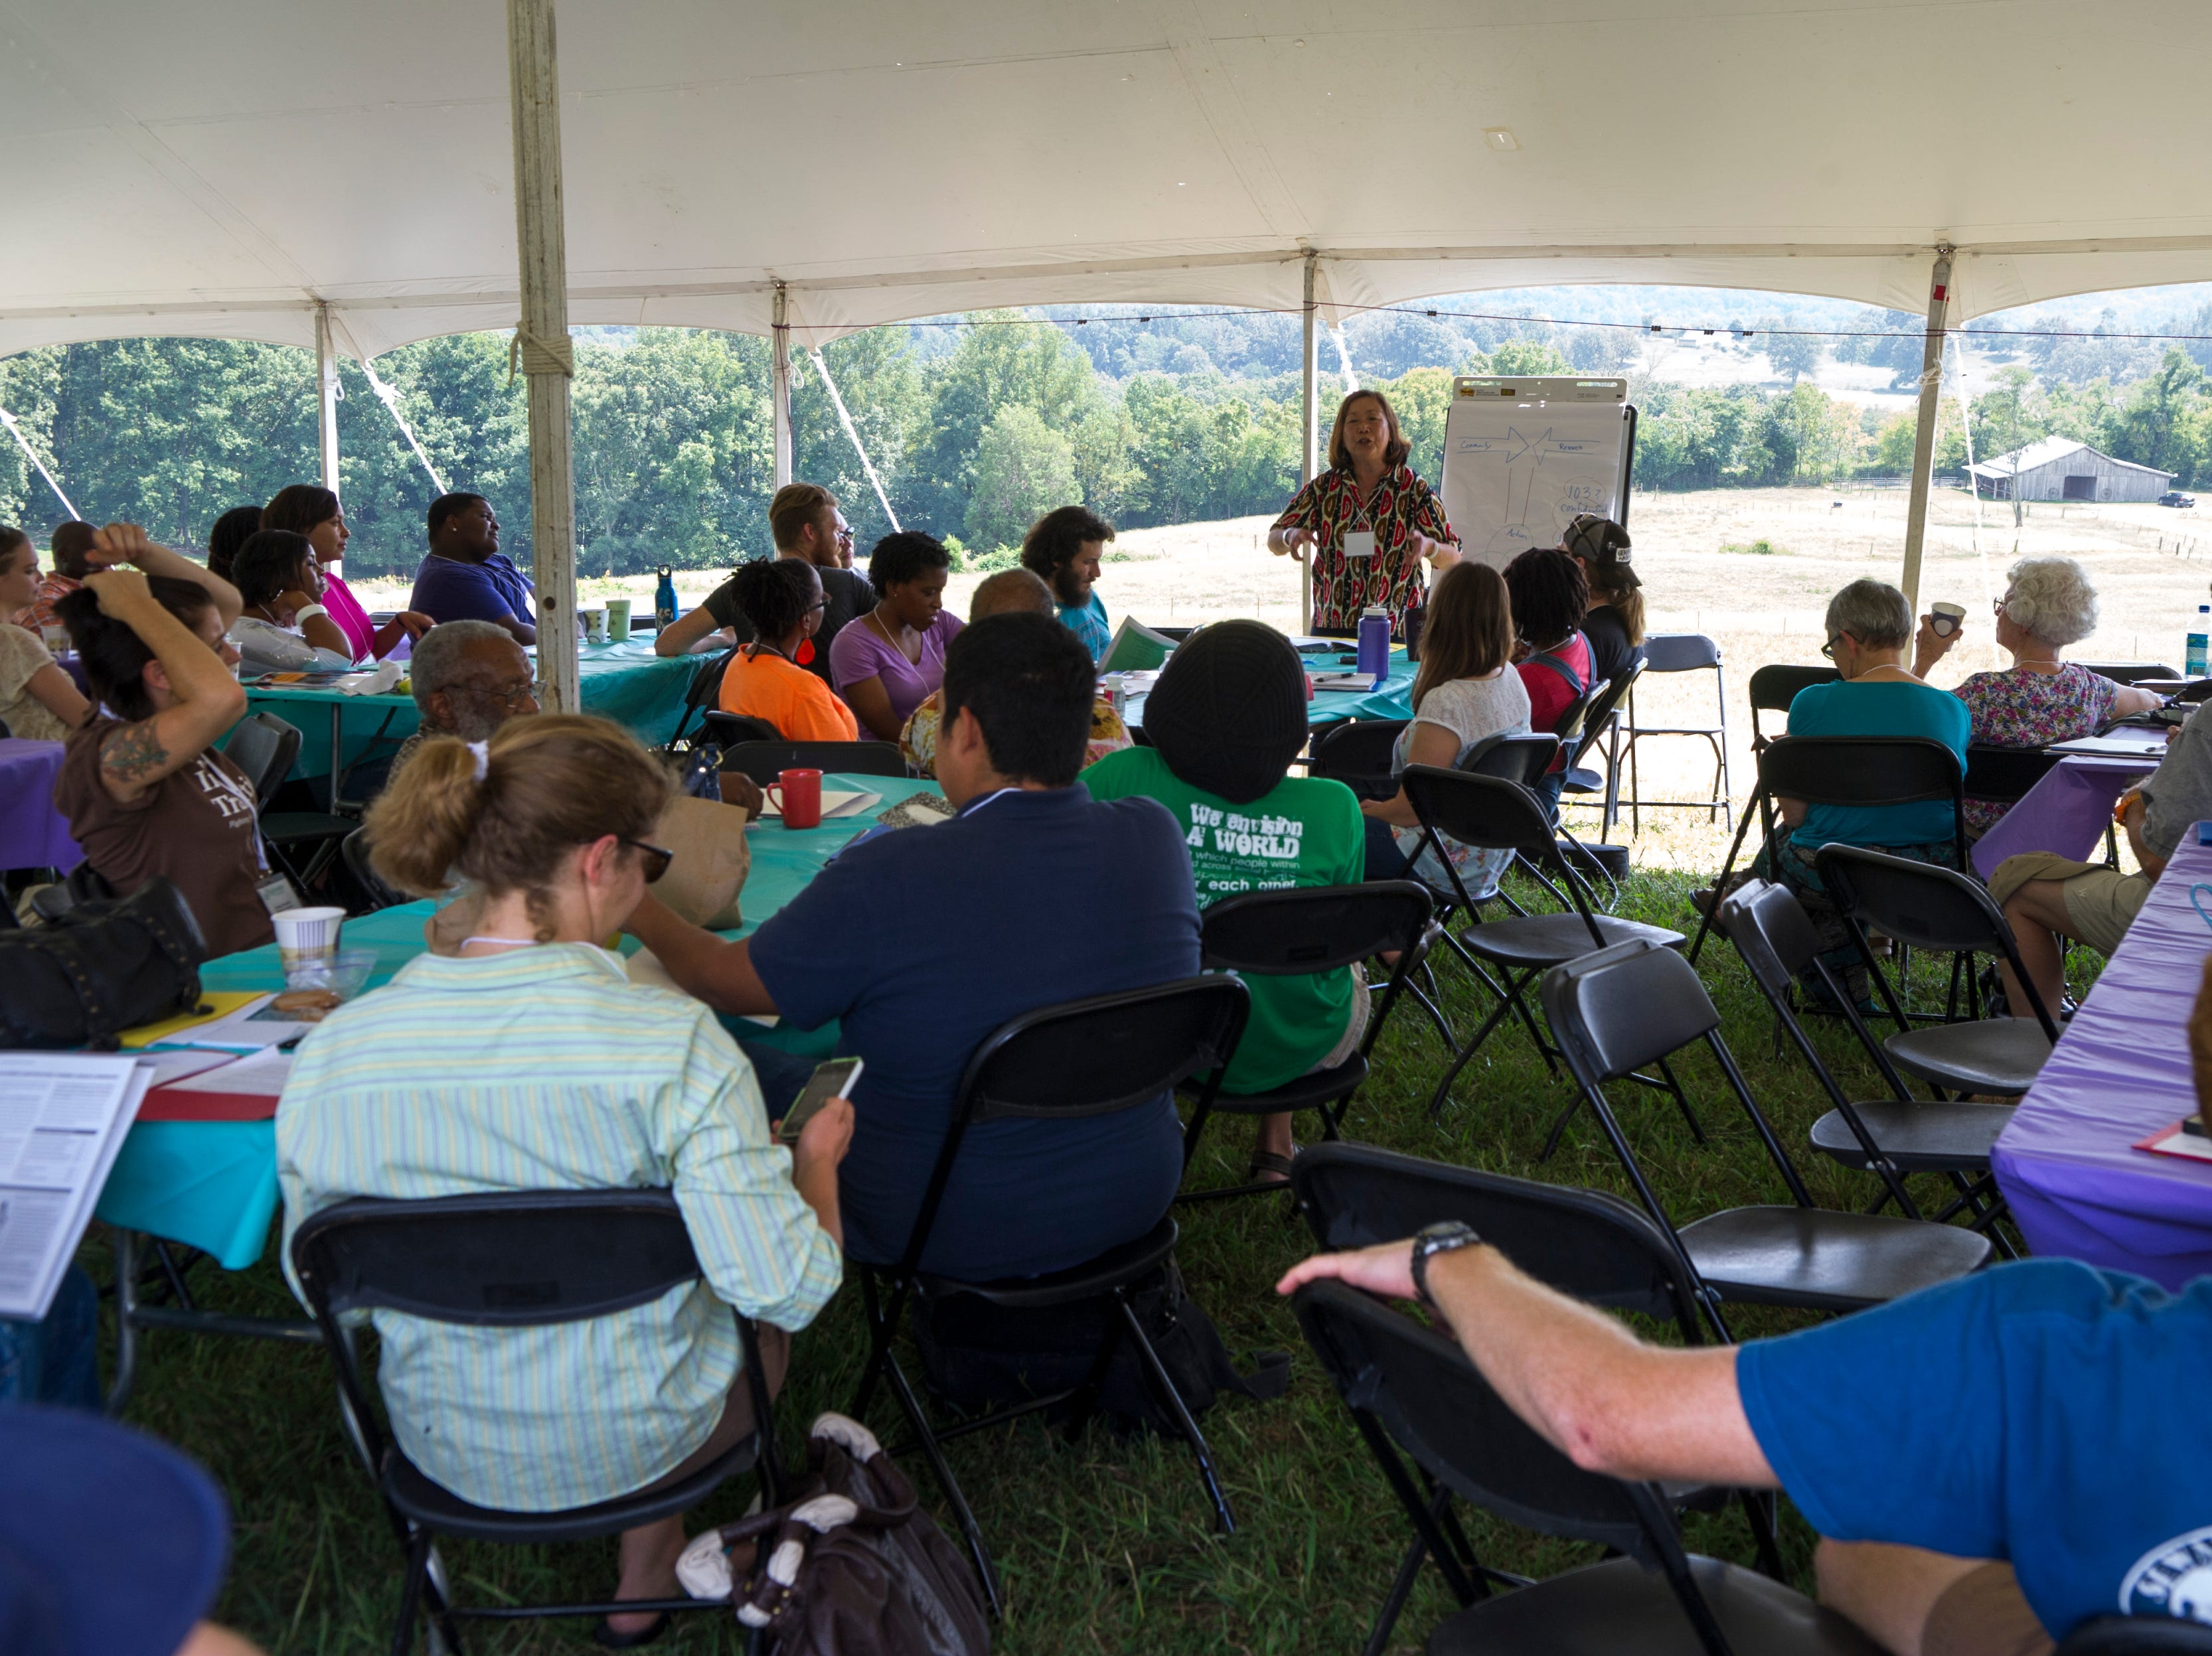 Pam Tau Lee, standing background, leads a participatory action research workshop during the 80th anniversary celebration at the Highlander Research and Education Center in New Market Saturday, Sept. 1, 2012.